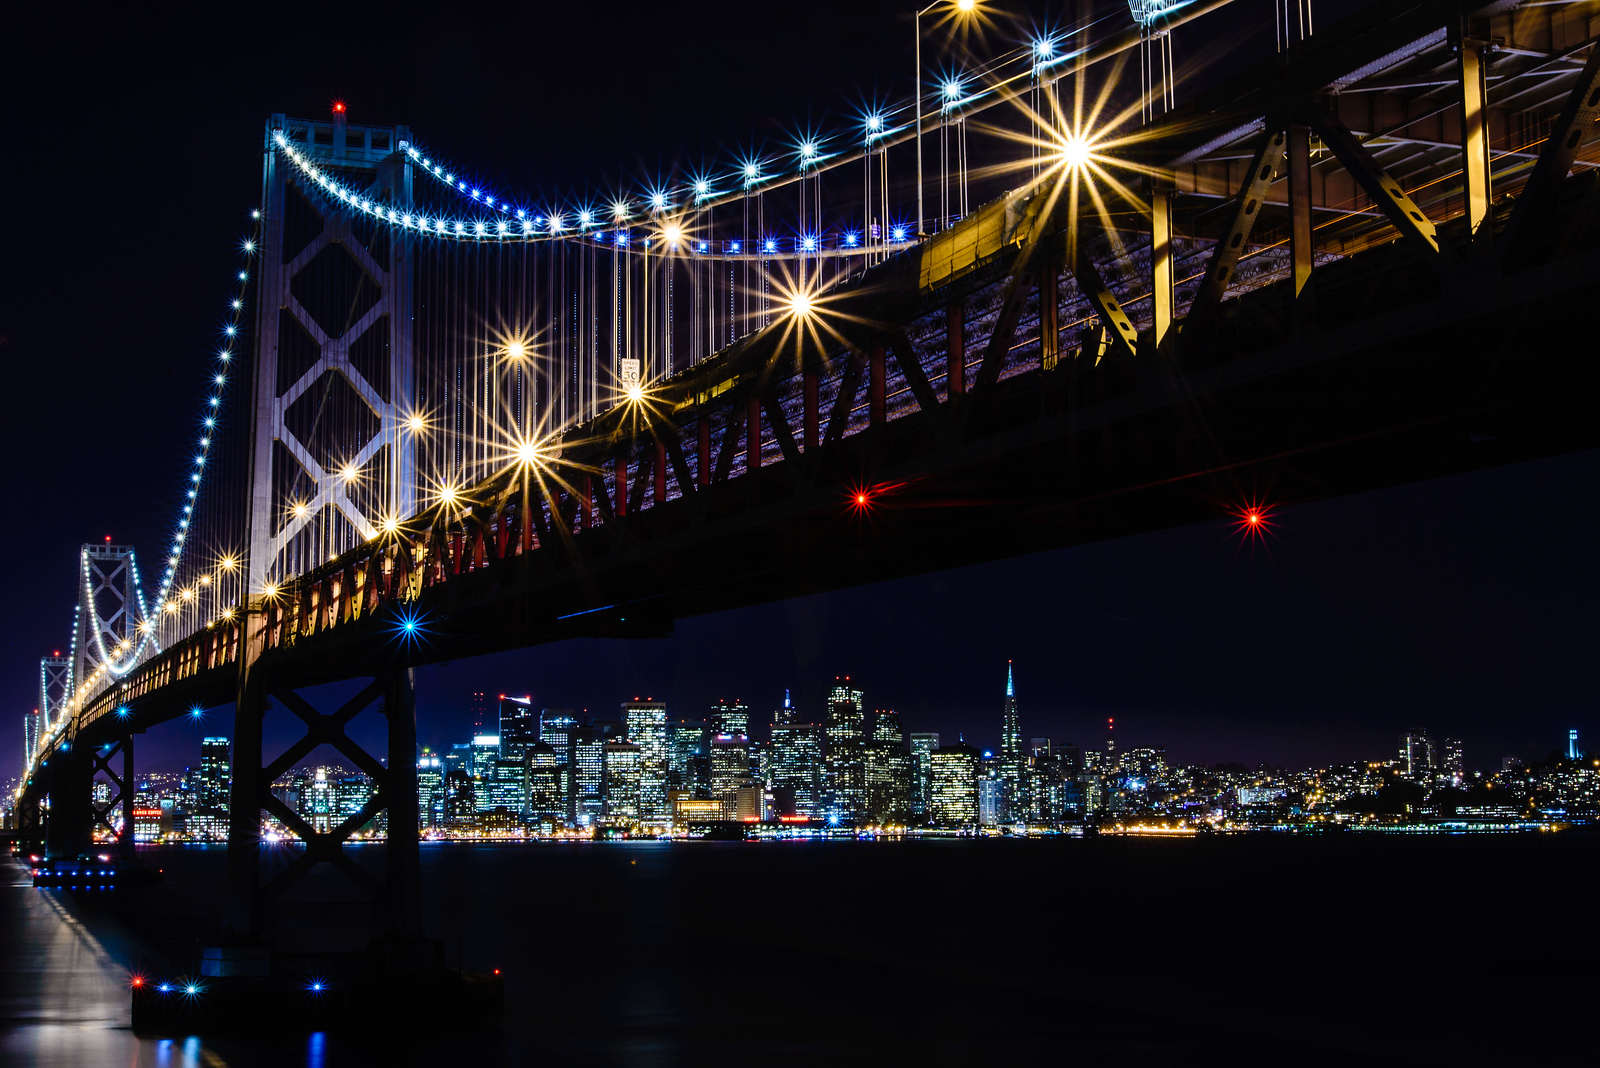 Met a few new great photographers shooting the Bay Bridge last night at sunset, so we decided to try to find our way down below the bridge.  Success!  First published shot with the new d600, and I don't know about you all, but I can really tell the difference.  So happy with my purchase so far.